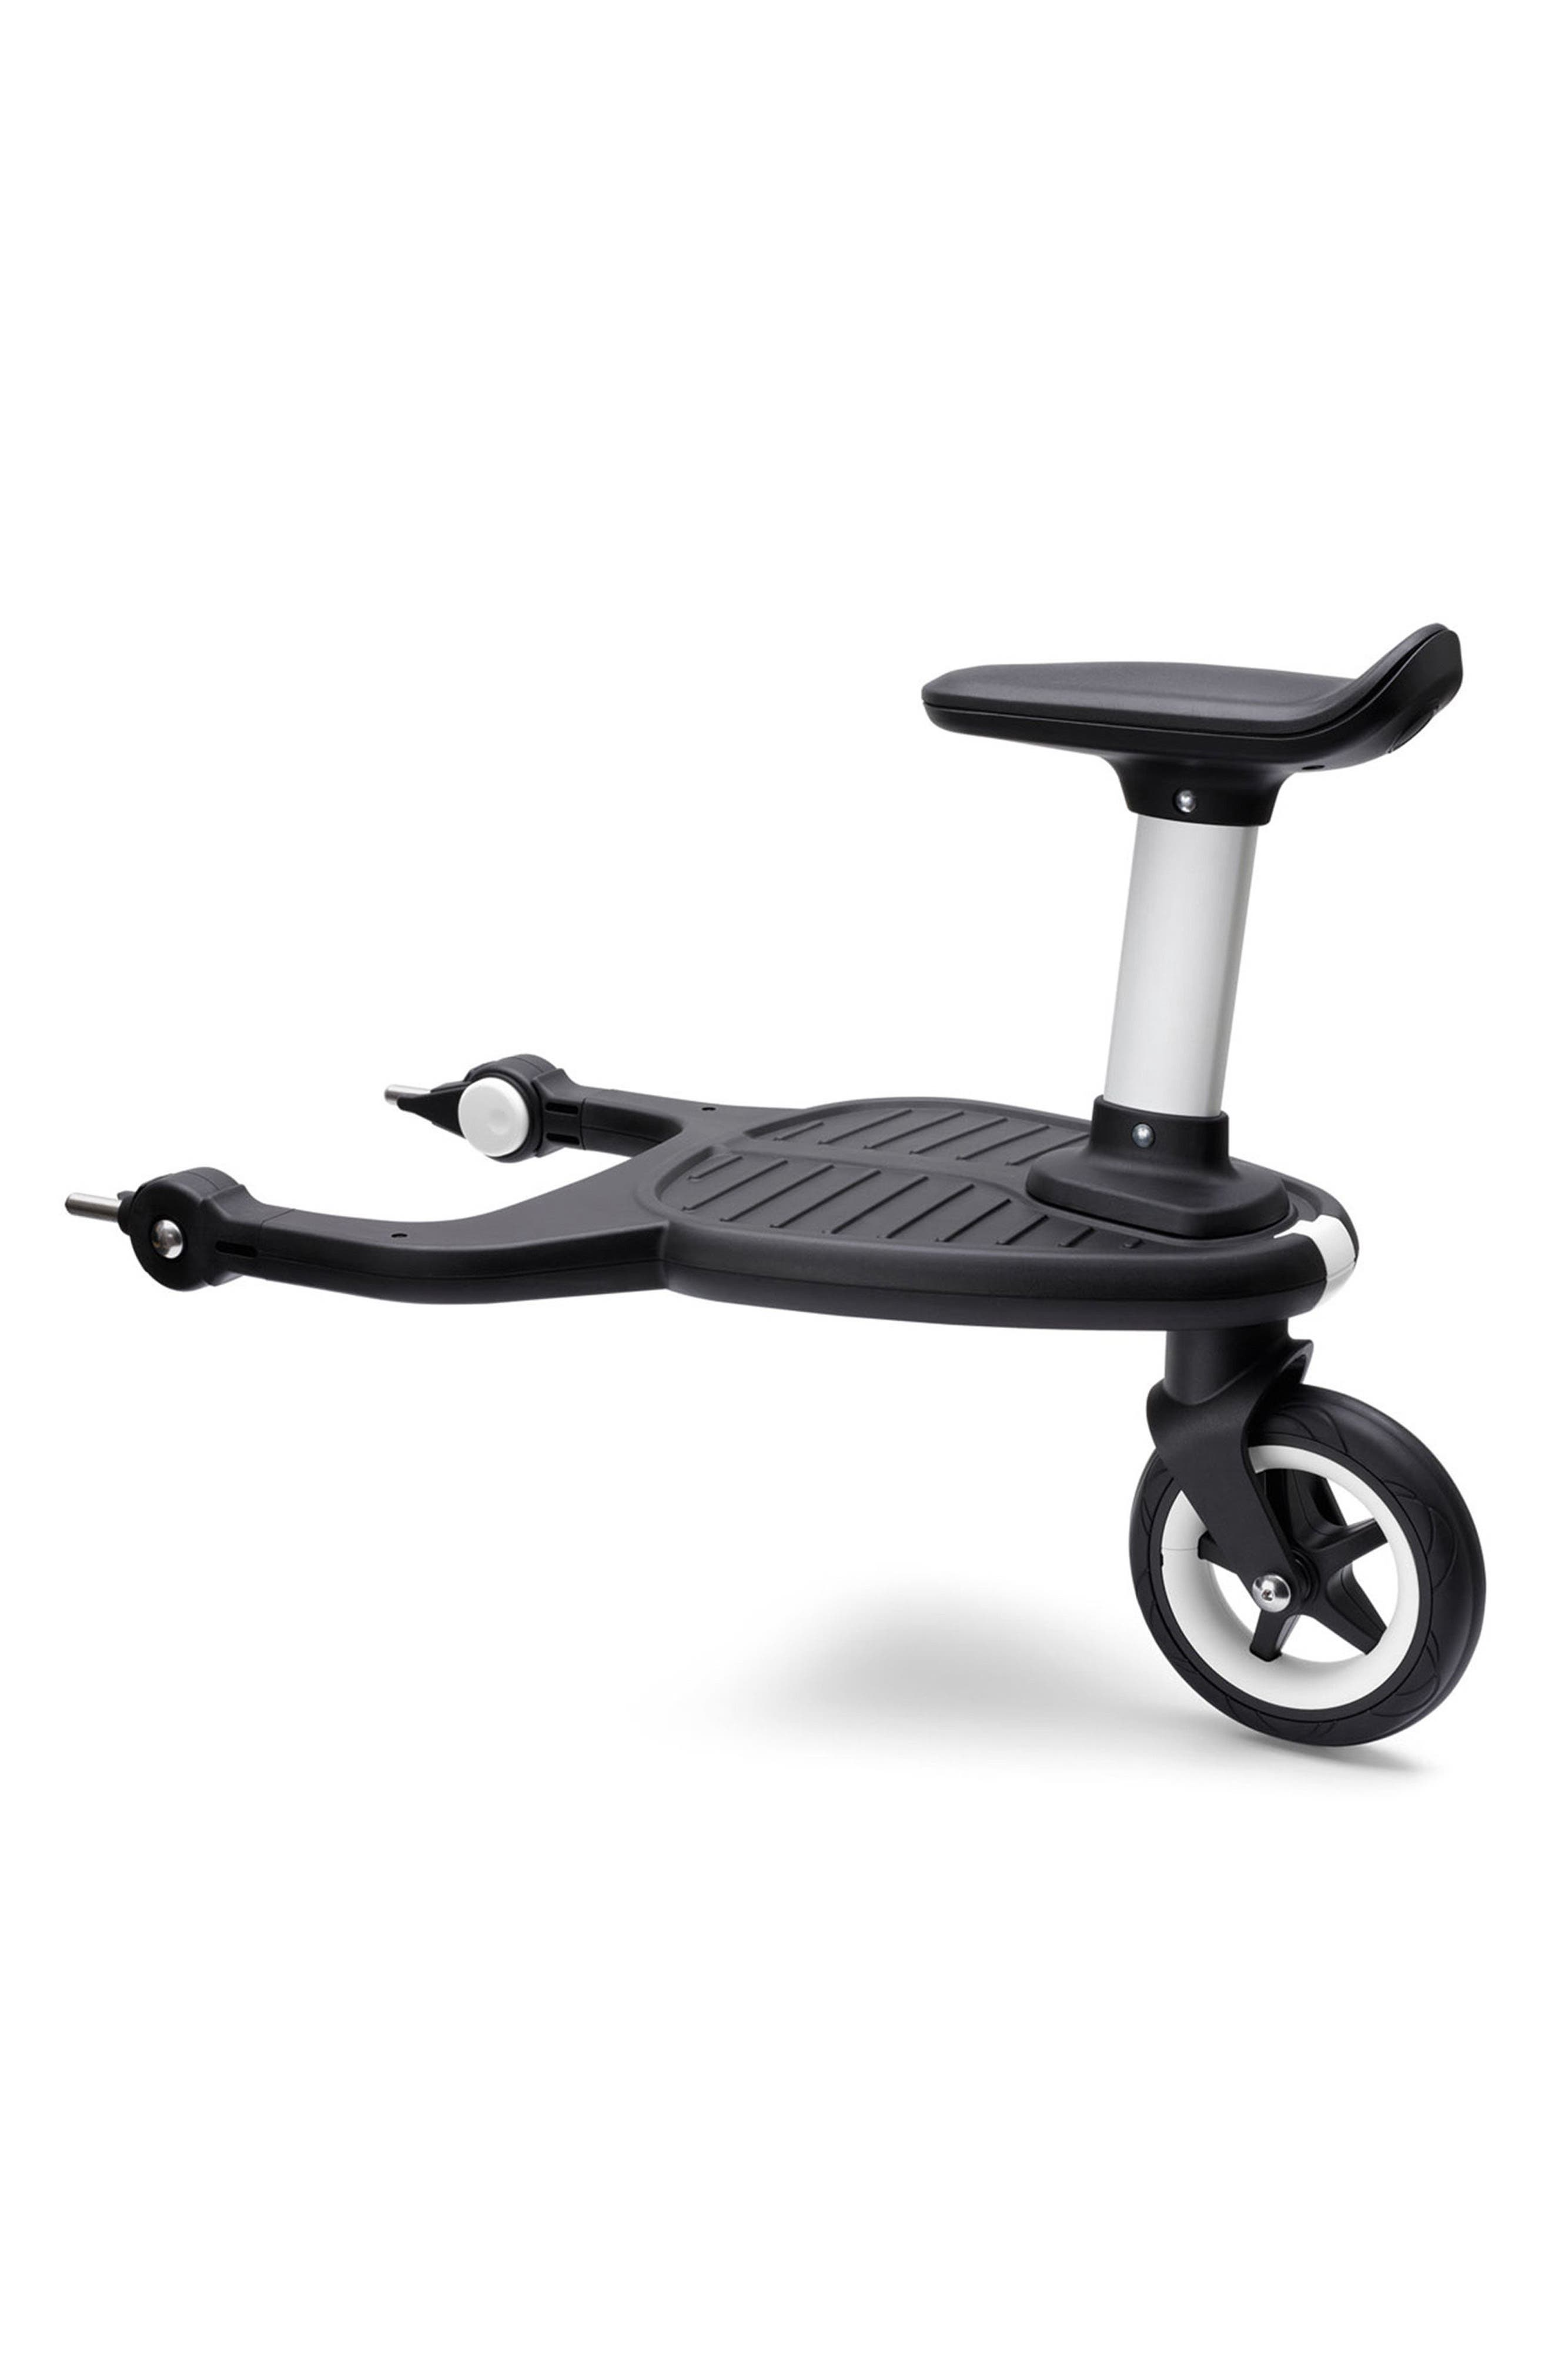 Stroller 2017 Comfort Wheeled Board,                         Main,                         color, 001